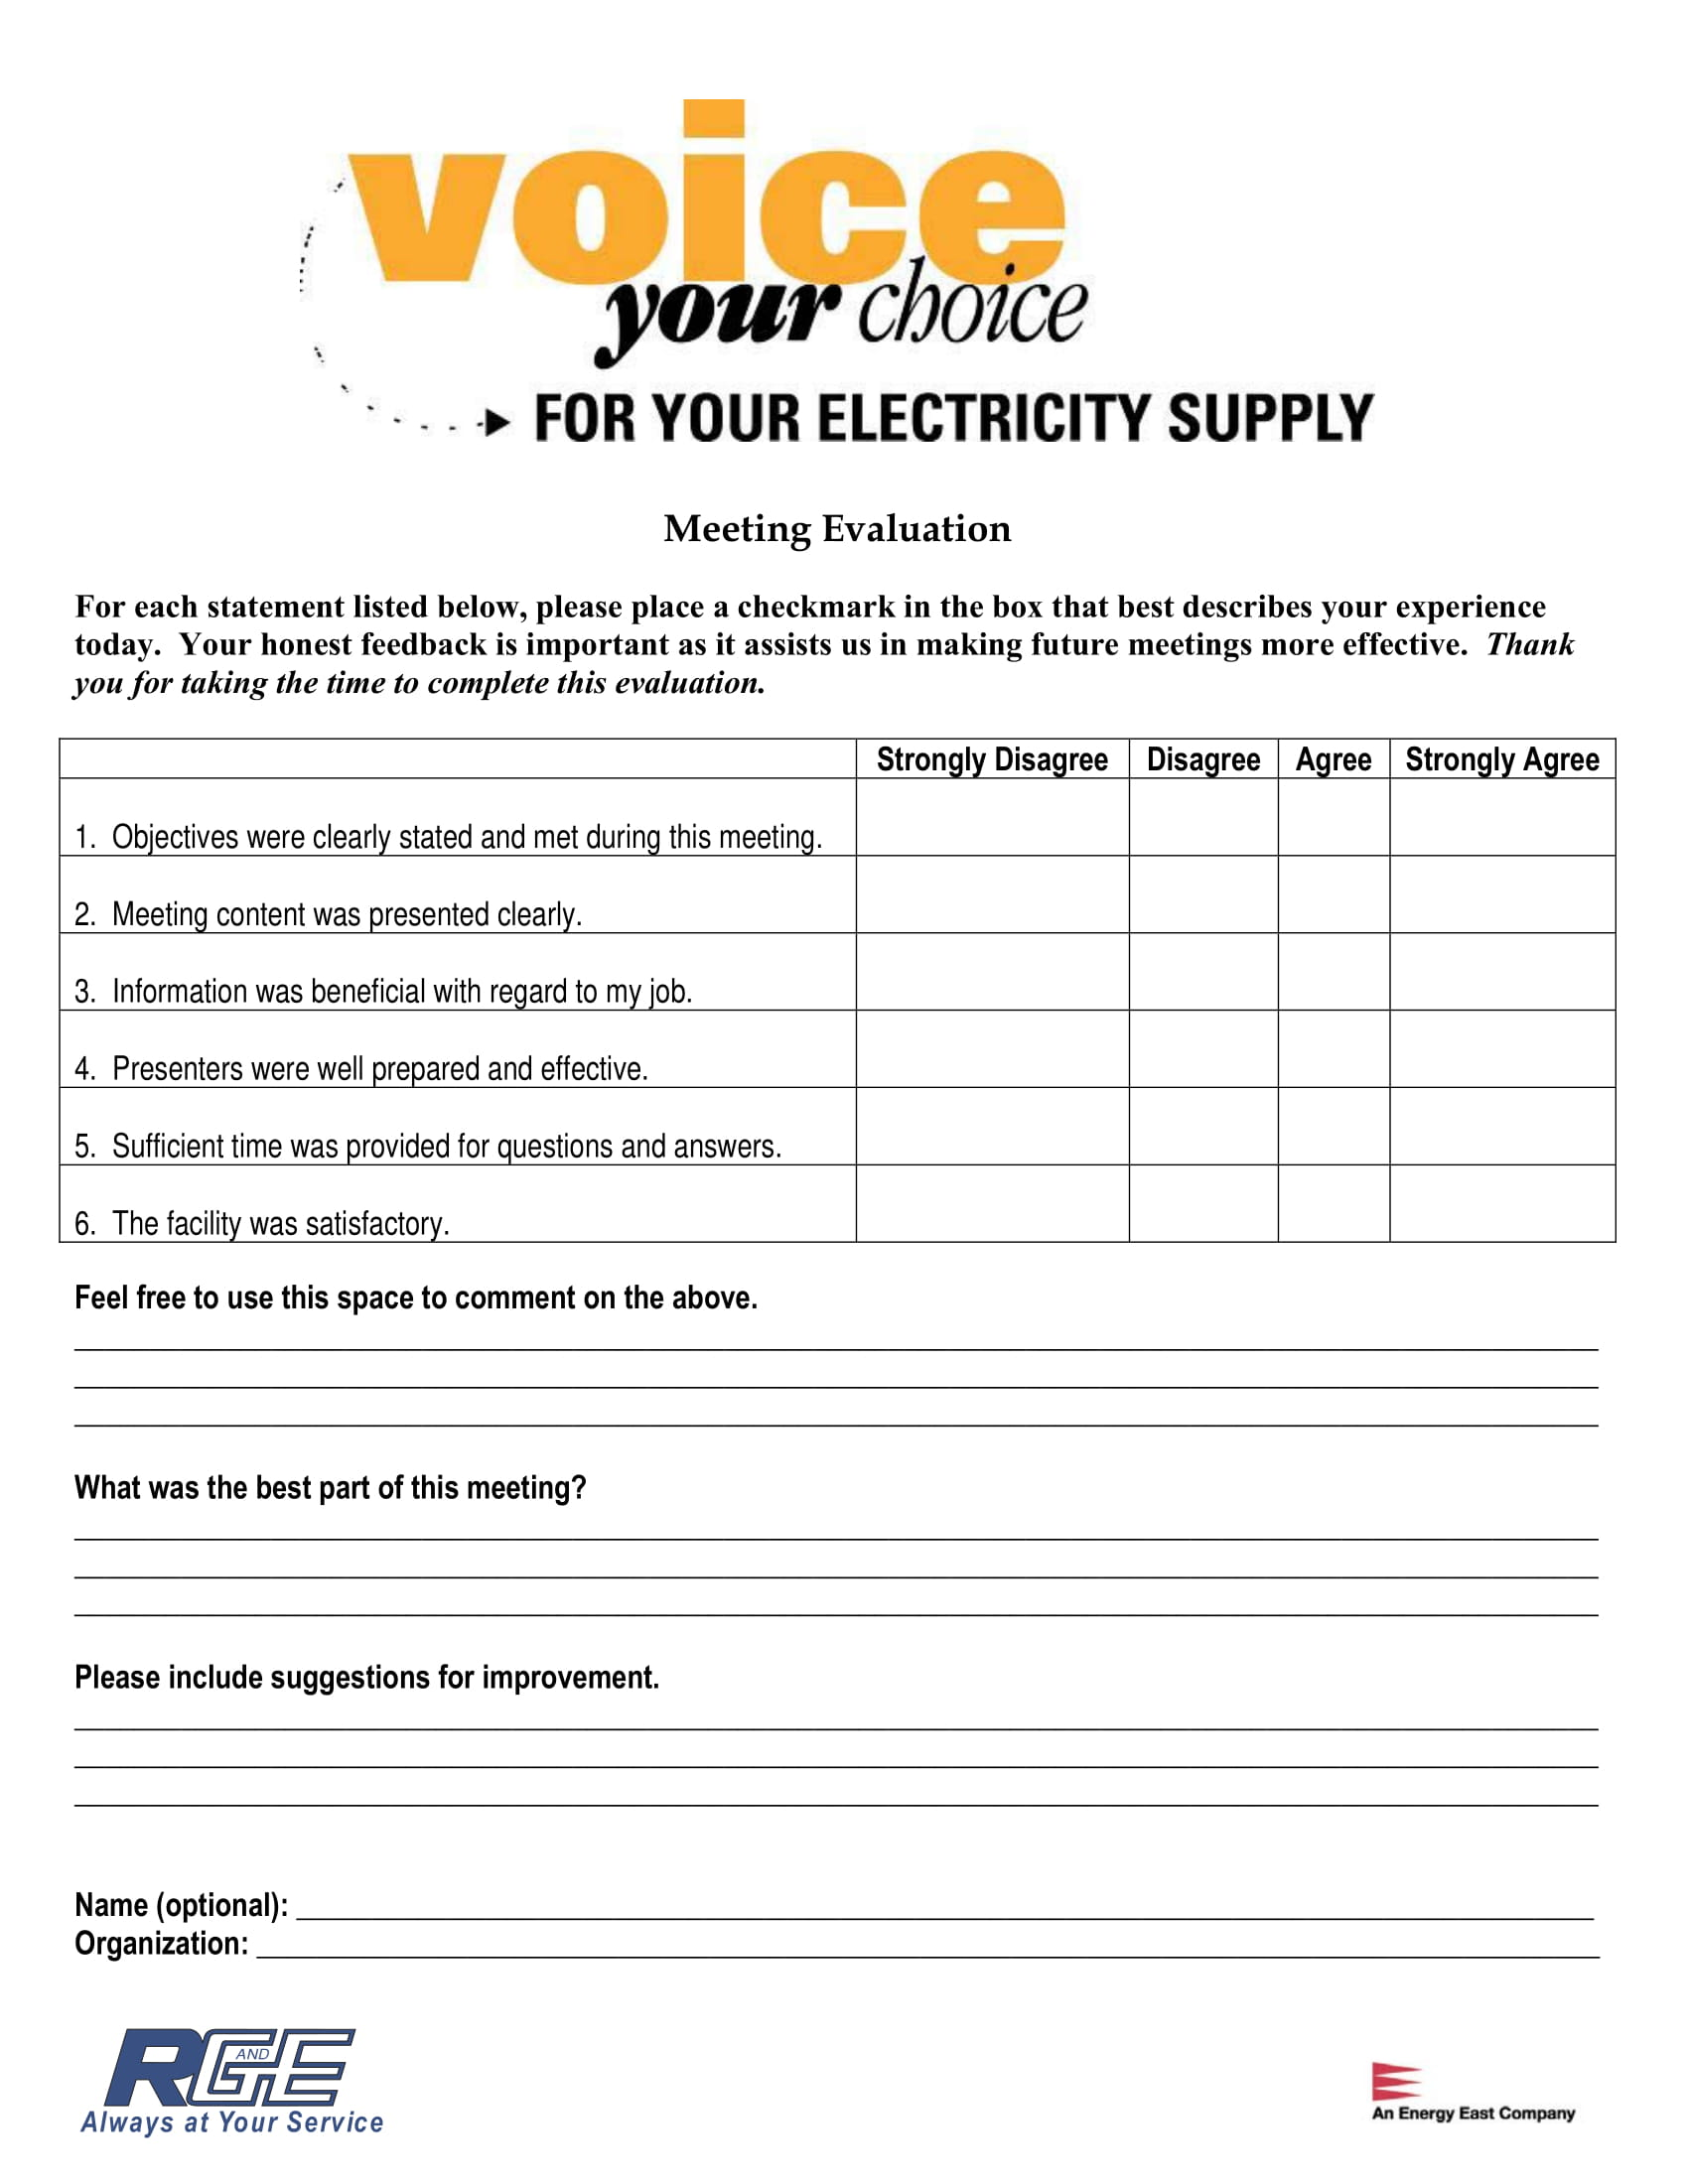 Meeting Evaluation Form Example